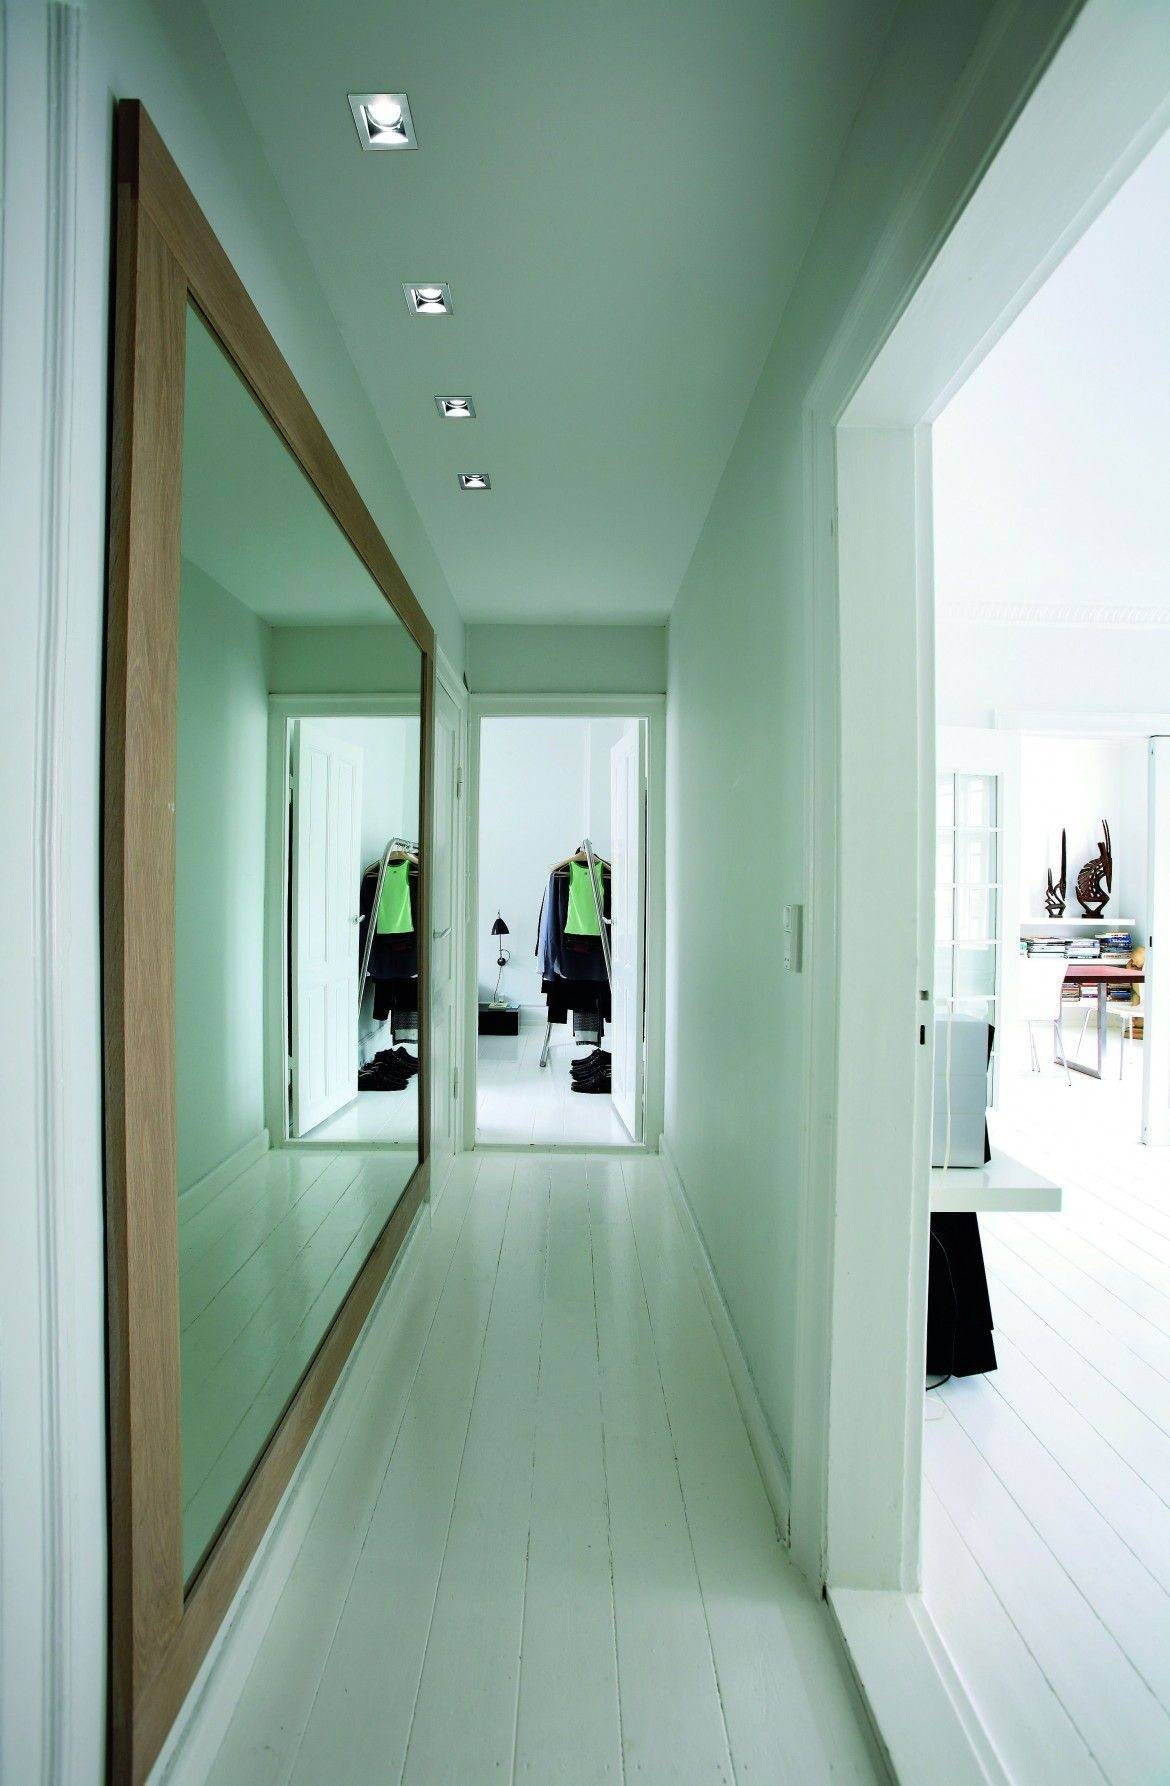 Hallway With Large Framed Wall Mirror In White Walls - Hallway with Long Mirrors For Hallway (Image 10 of 15)